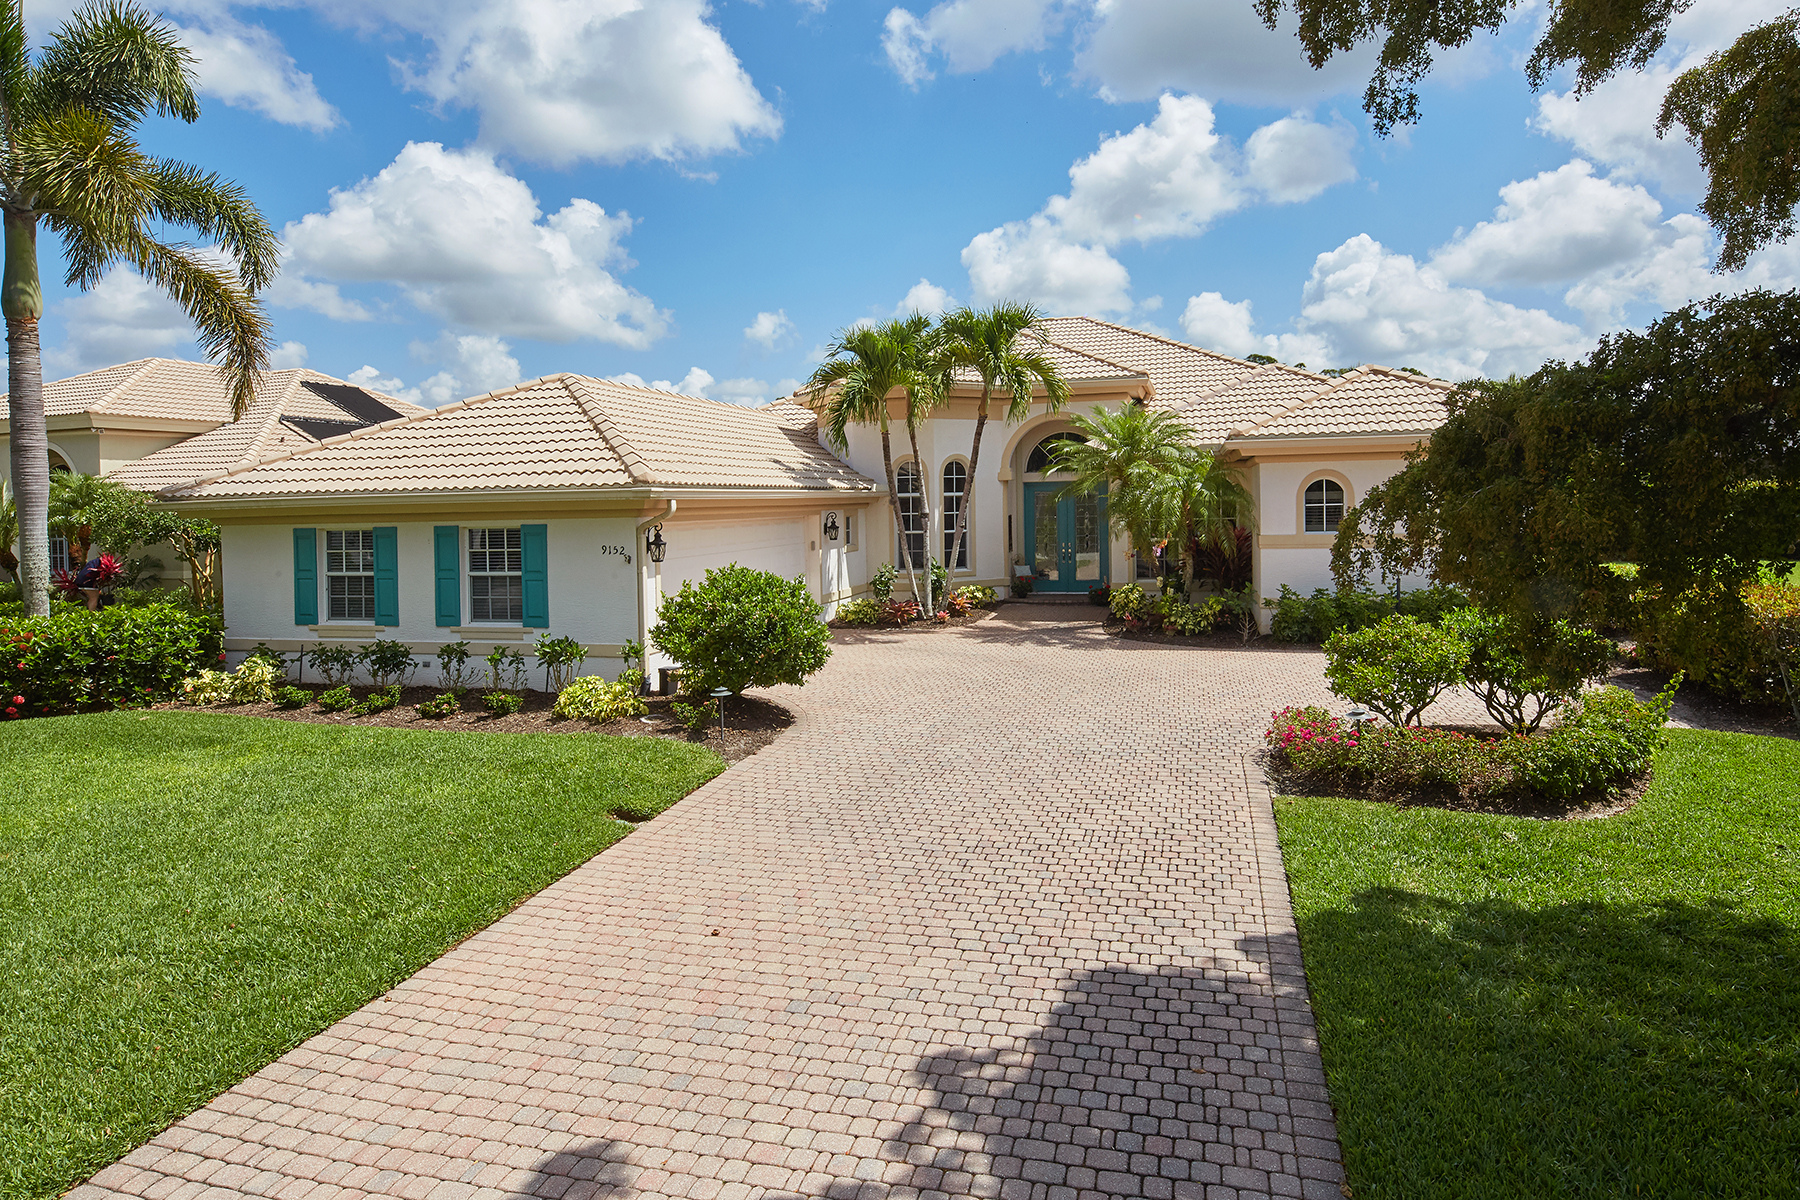 Single Family Homes için Satış at SHADOW WOOD AT THE BROOKS - CEDAR GLEN 9152 Hollow Pine Drive, Estero, Florida 34135 Amerika Birleşik Devletleri